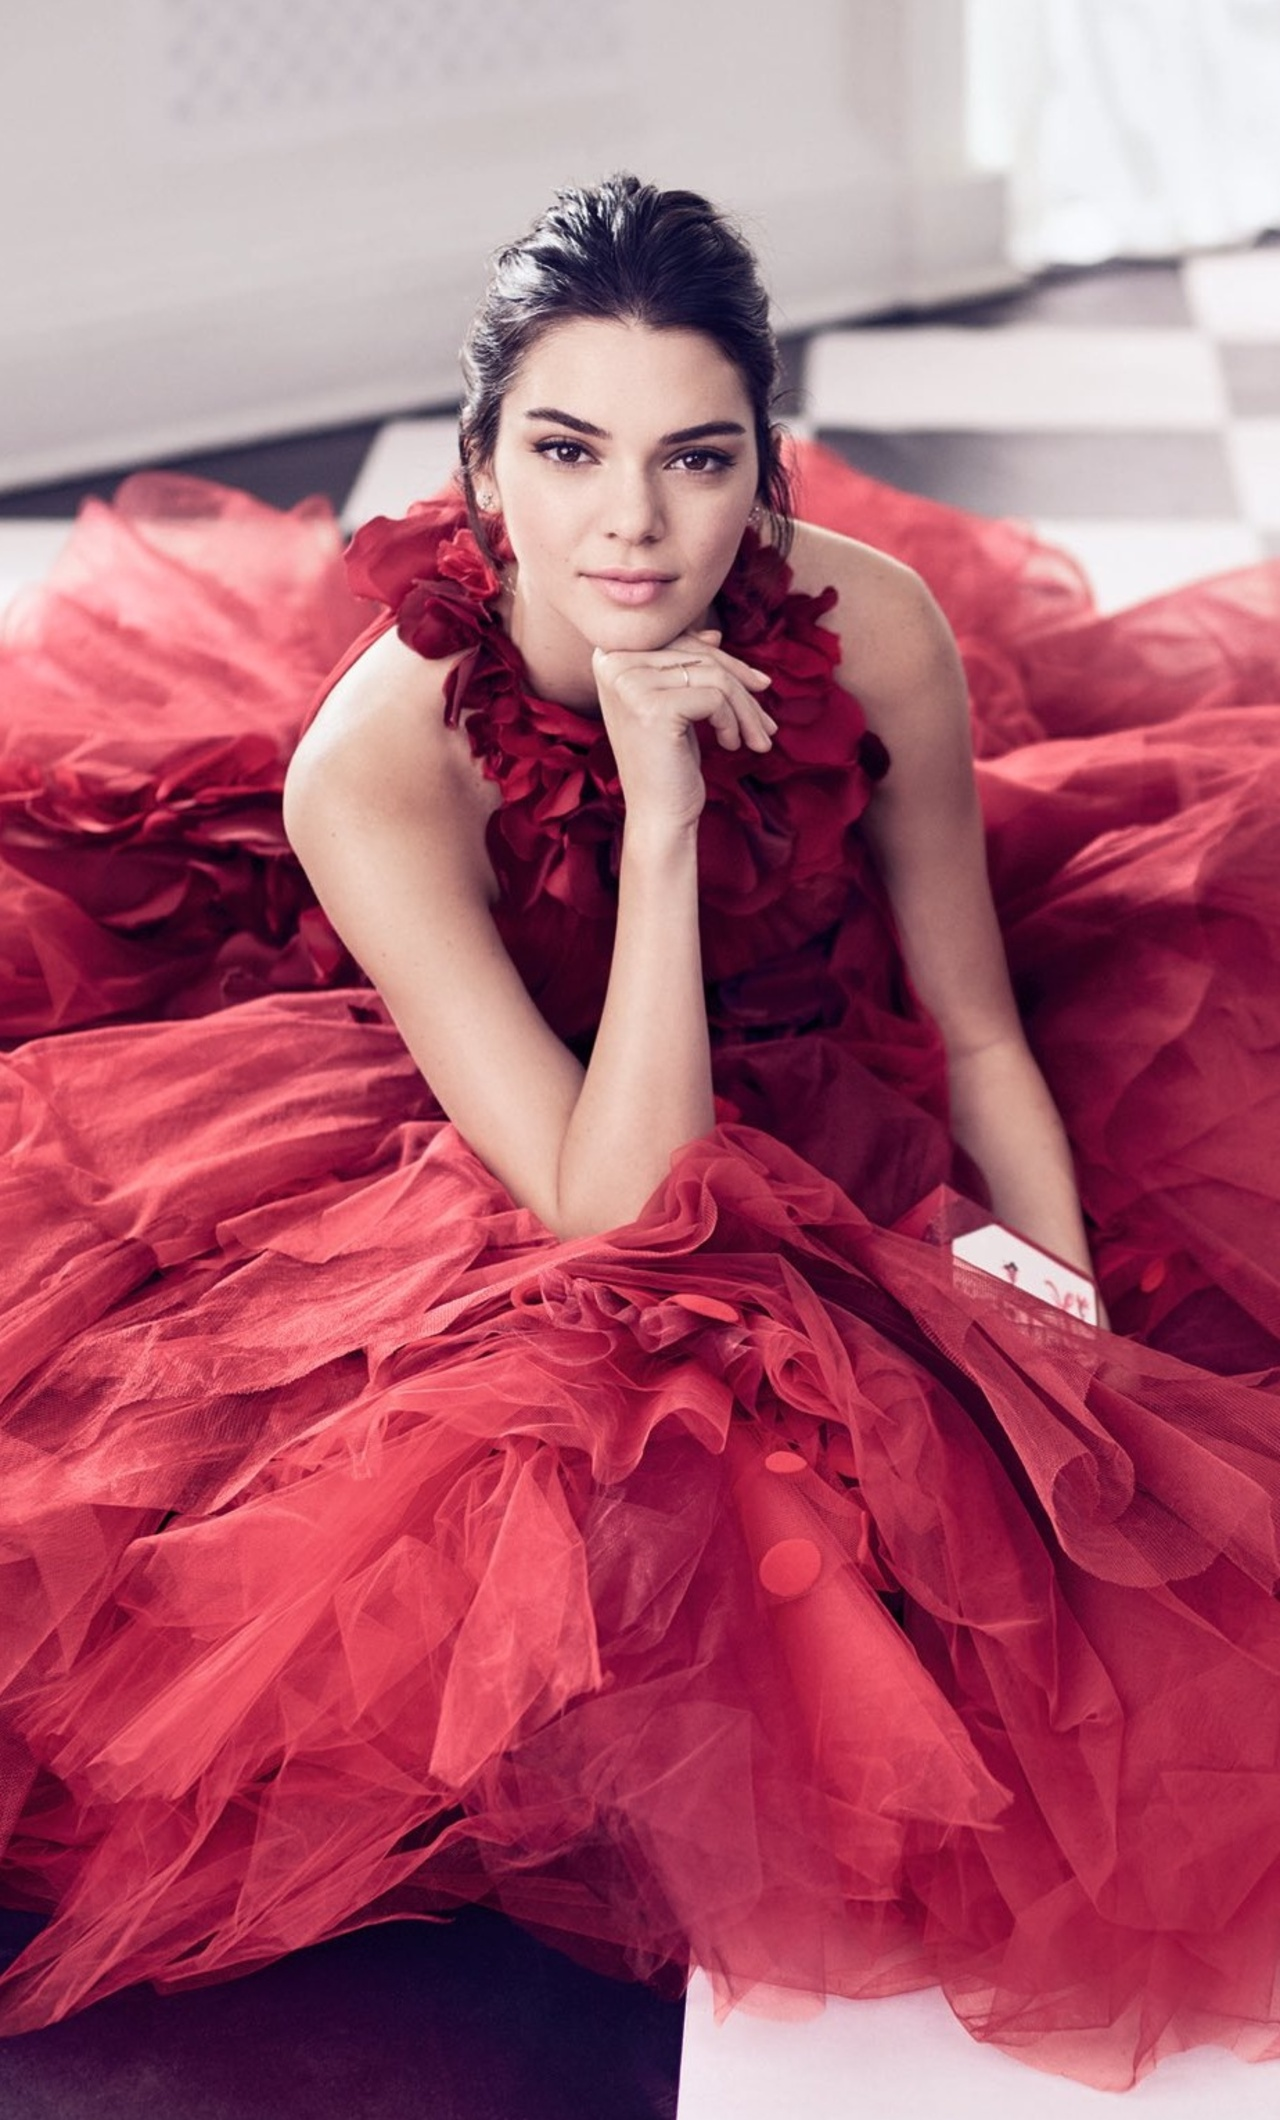 88574bf36e3 1280x2120 Kendall Jenner In Nice Red Dress iPhone 6+ HD 4k ...